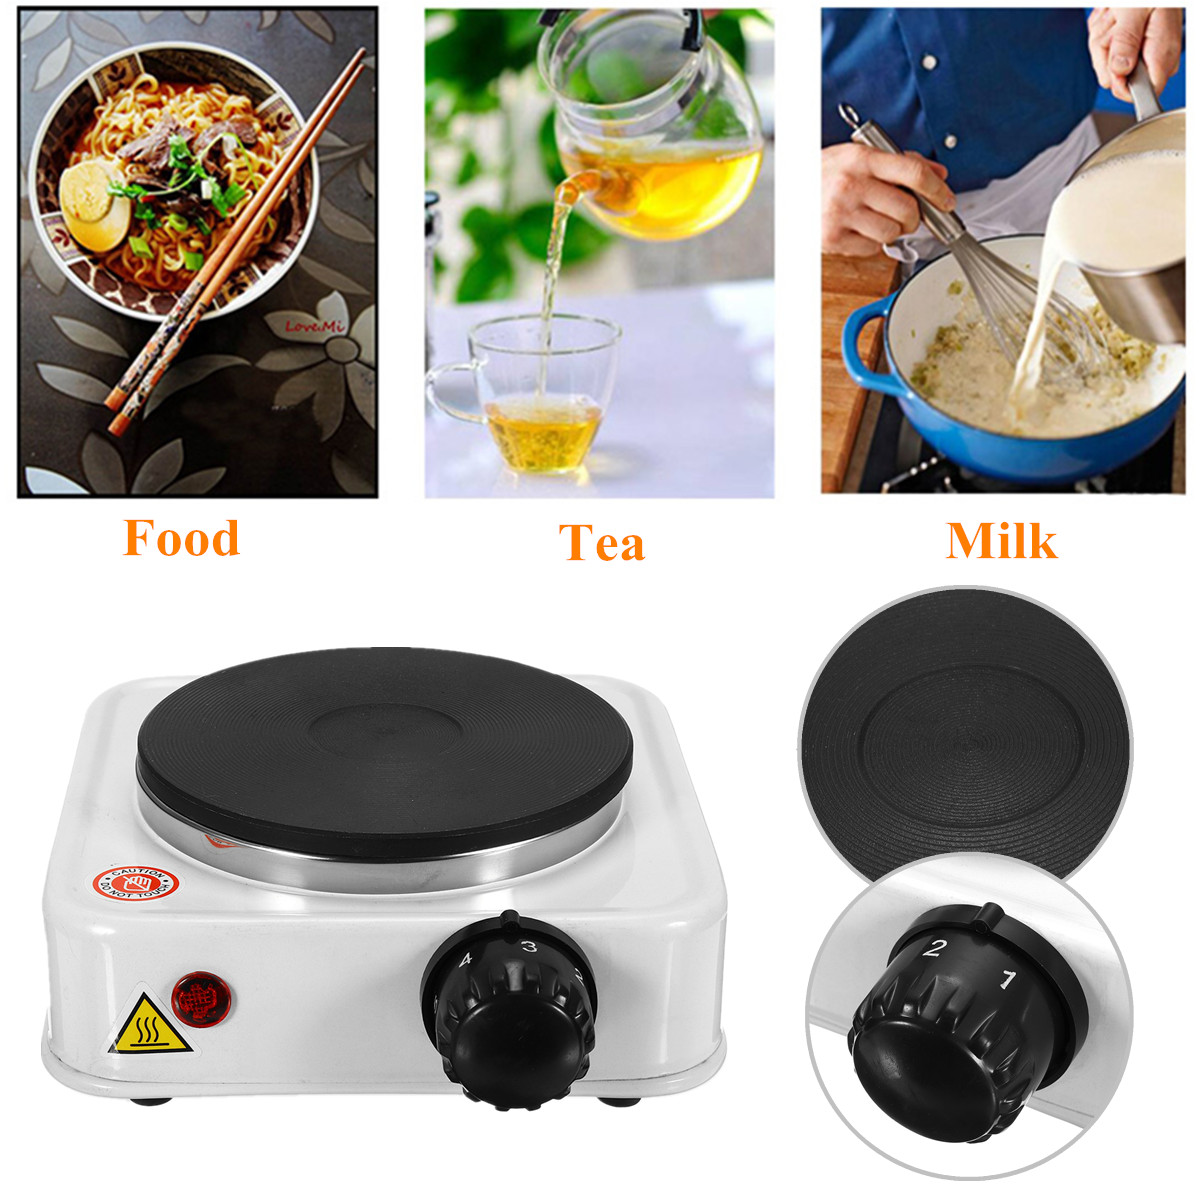 1000W Electric Burner Stove 110VUS/220V EU Quick Sustained Heat Eco-friendly Hot Plate Portable Kitchen Cooker Coffee Pot Heater цена